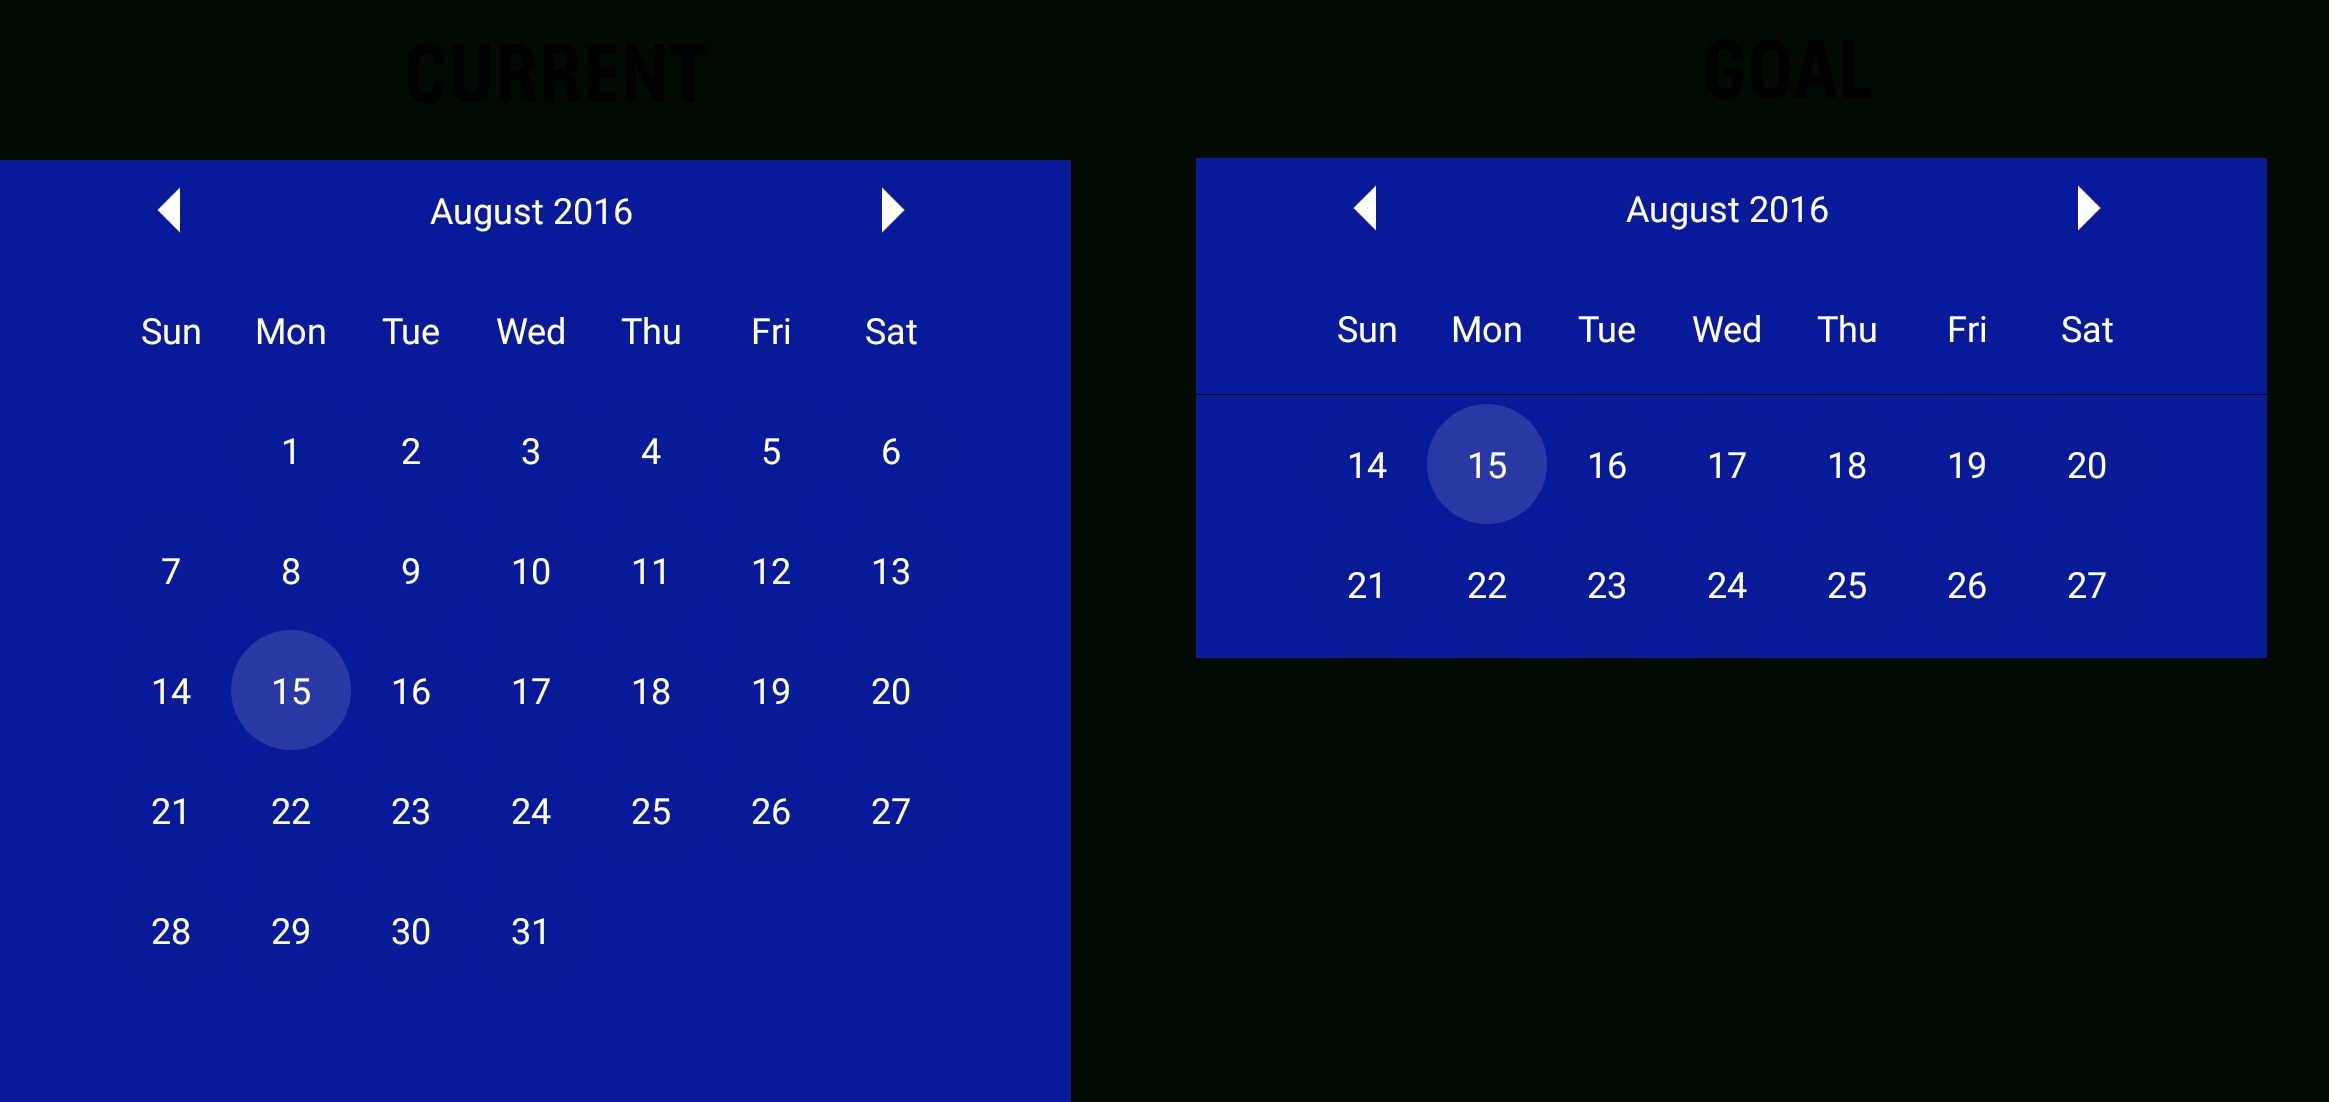 How To Display Only 2 Week In Calendarview In Android